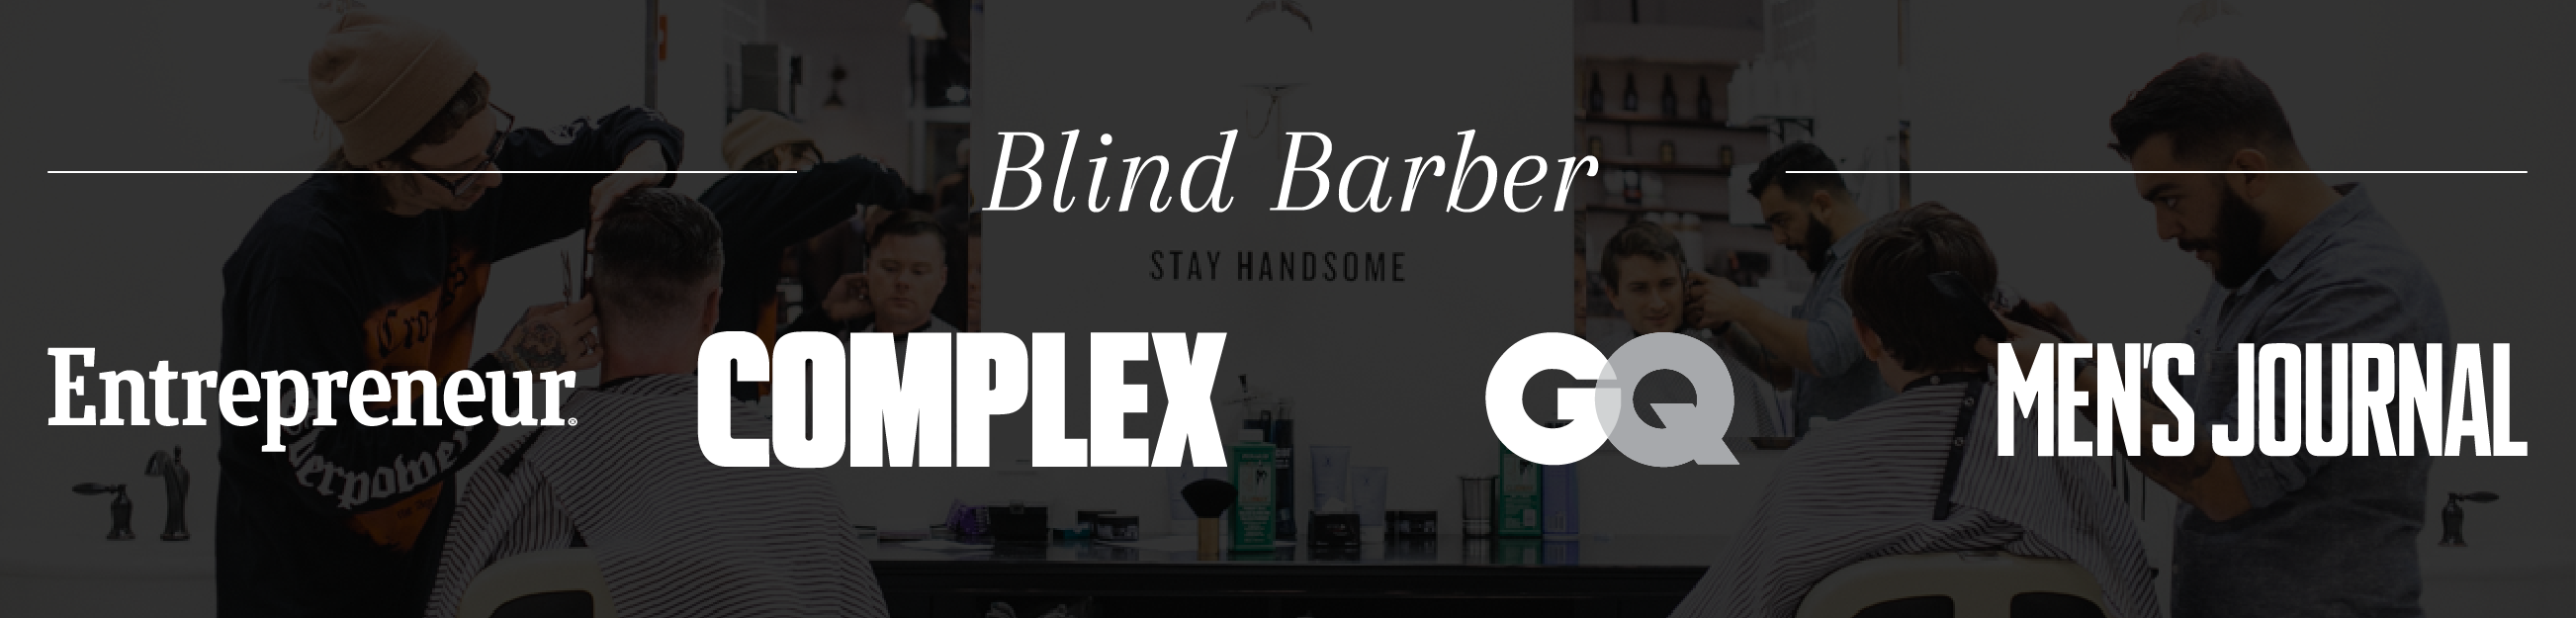 Blind Barber Blog